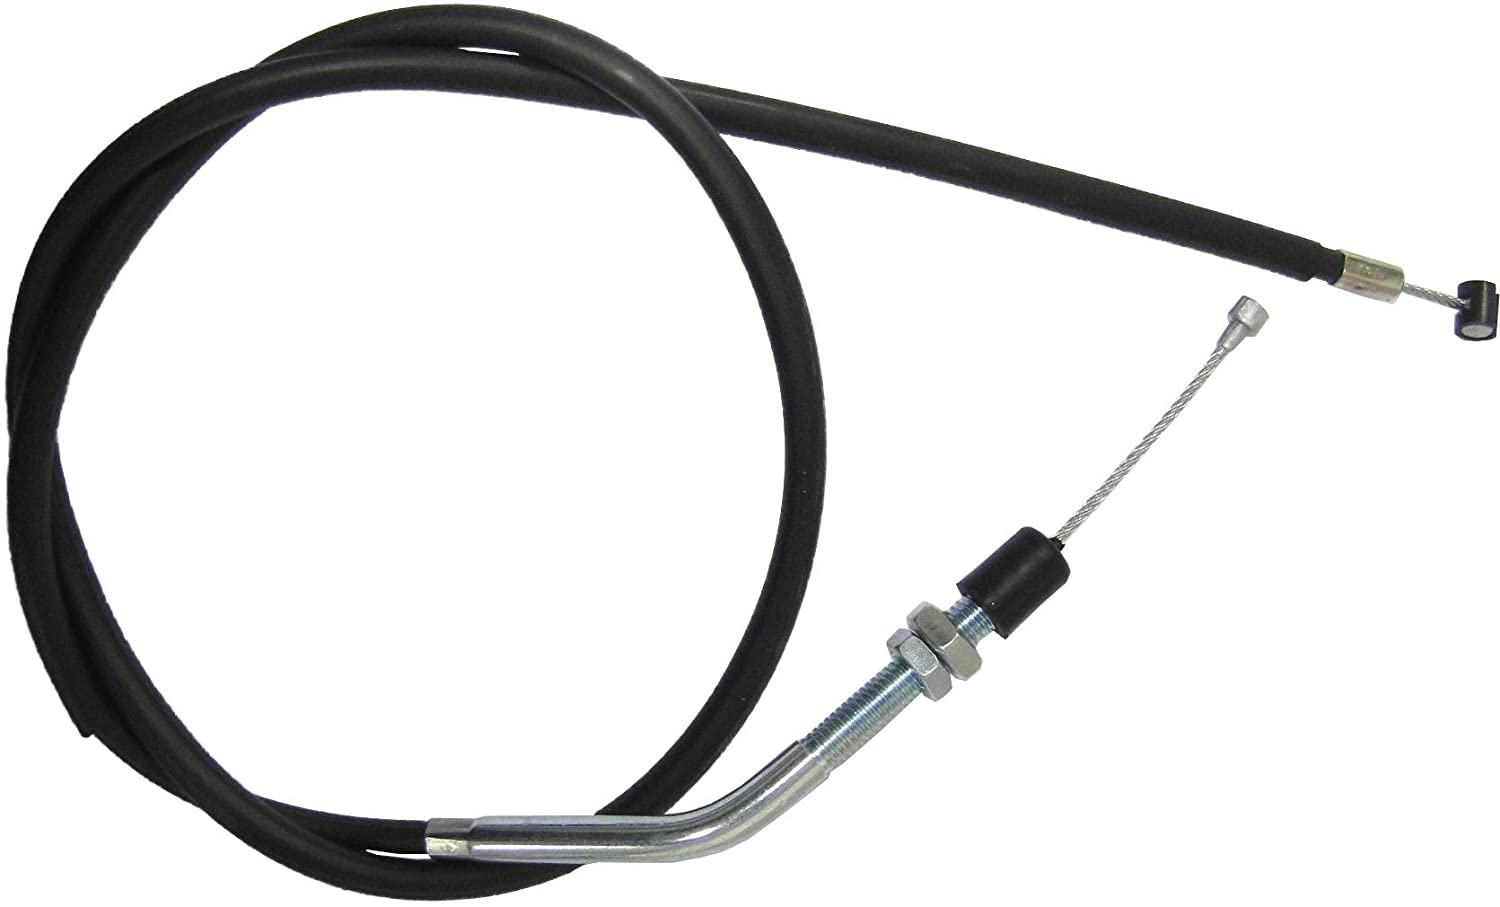 Honda XR 400 Clutch Cable 1996-2004 Hi Level